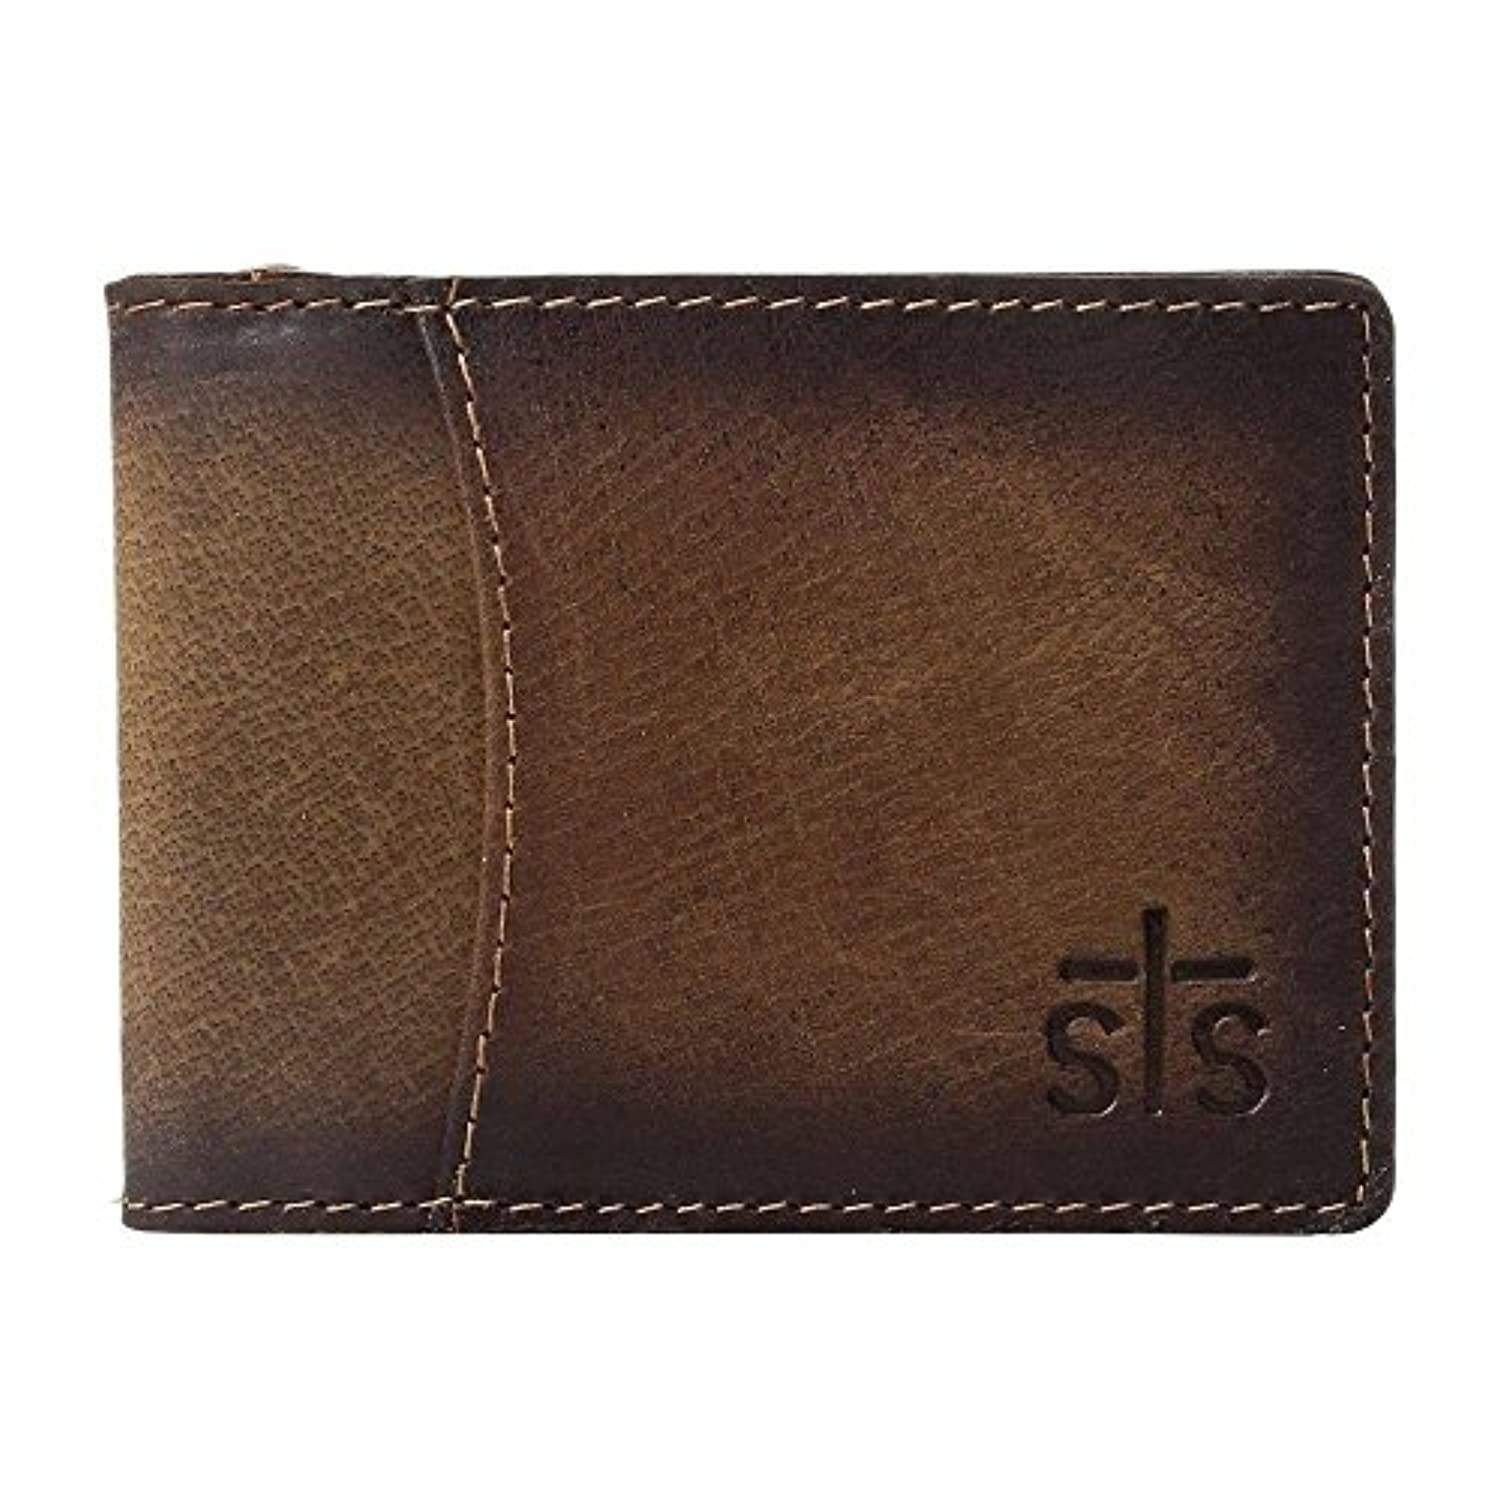 (STSランチウェア) STS Ranchwear メンズ マネークリップ The Foreman Hidden Money Clip Wallet [並行輸入品]